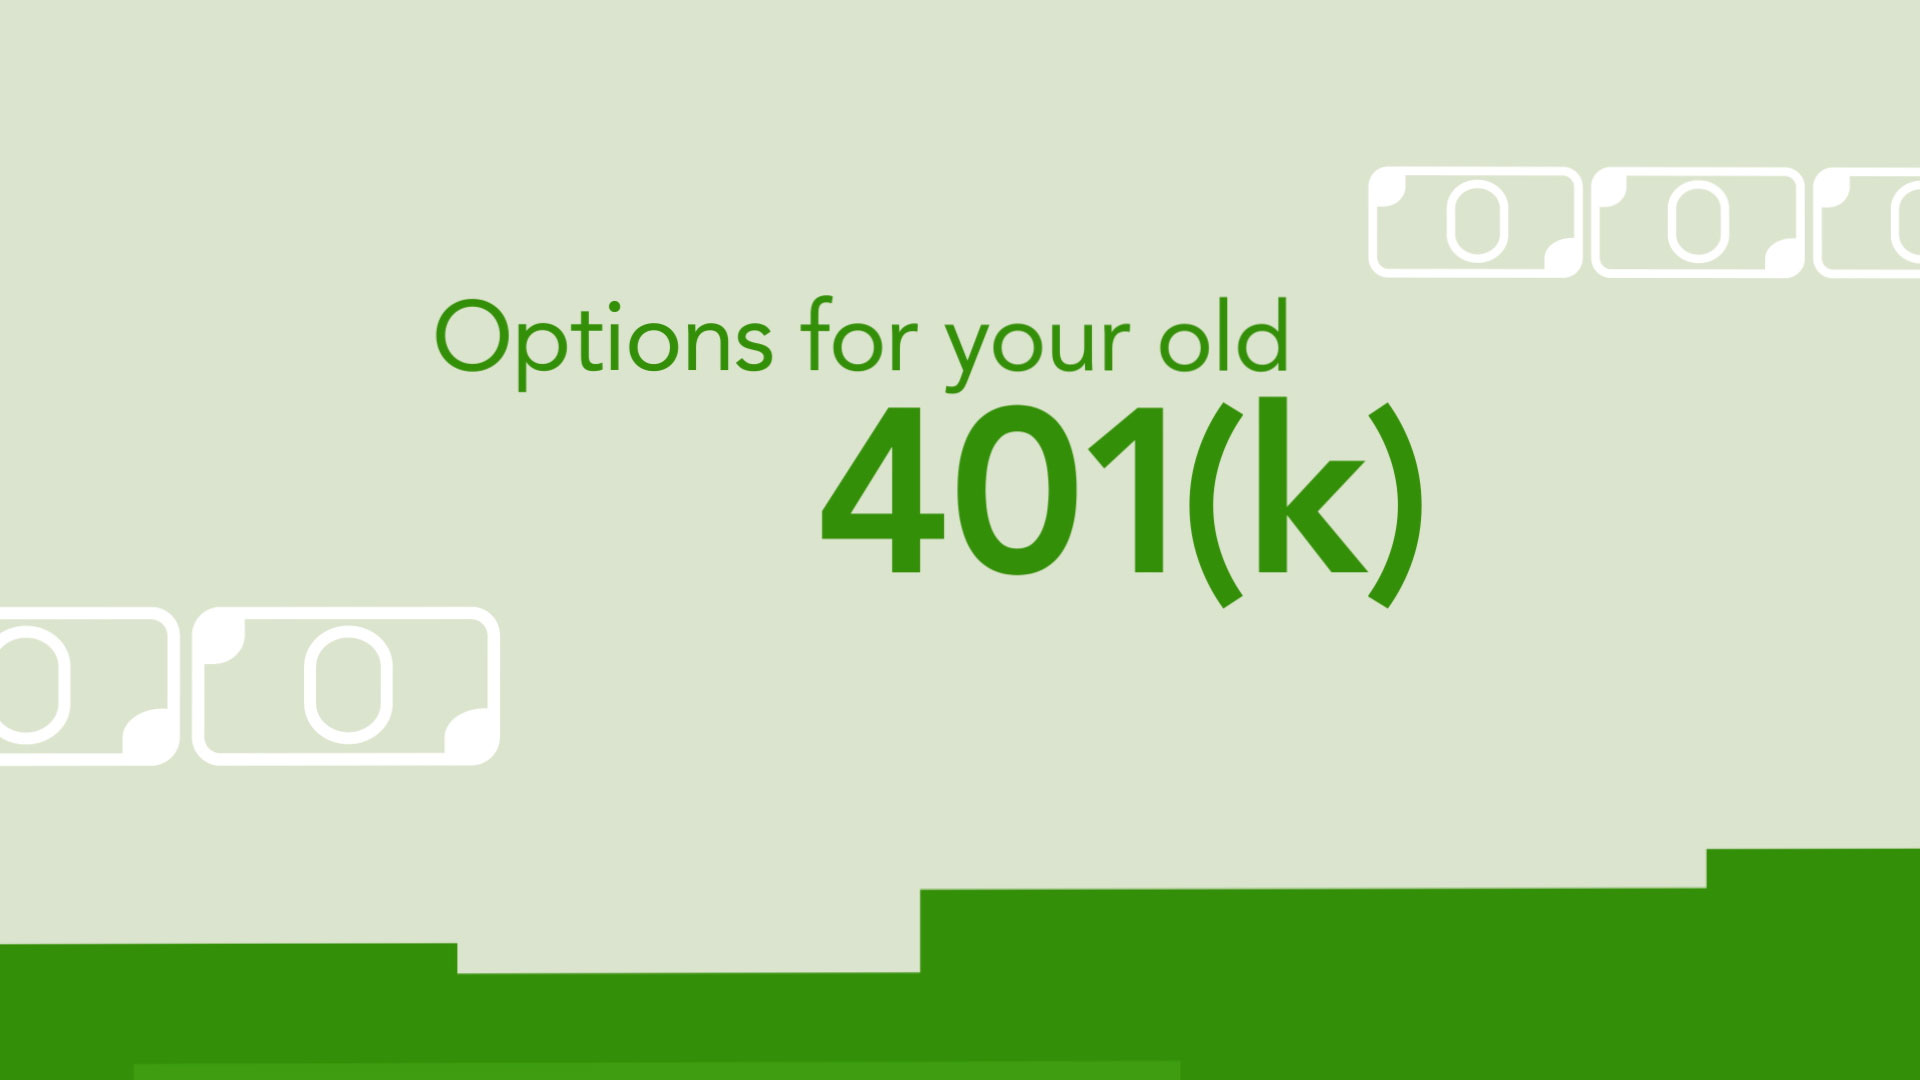 401k Rollover Options - Fidelity